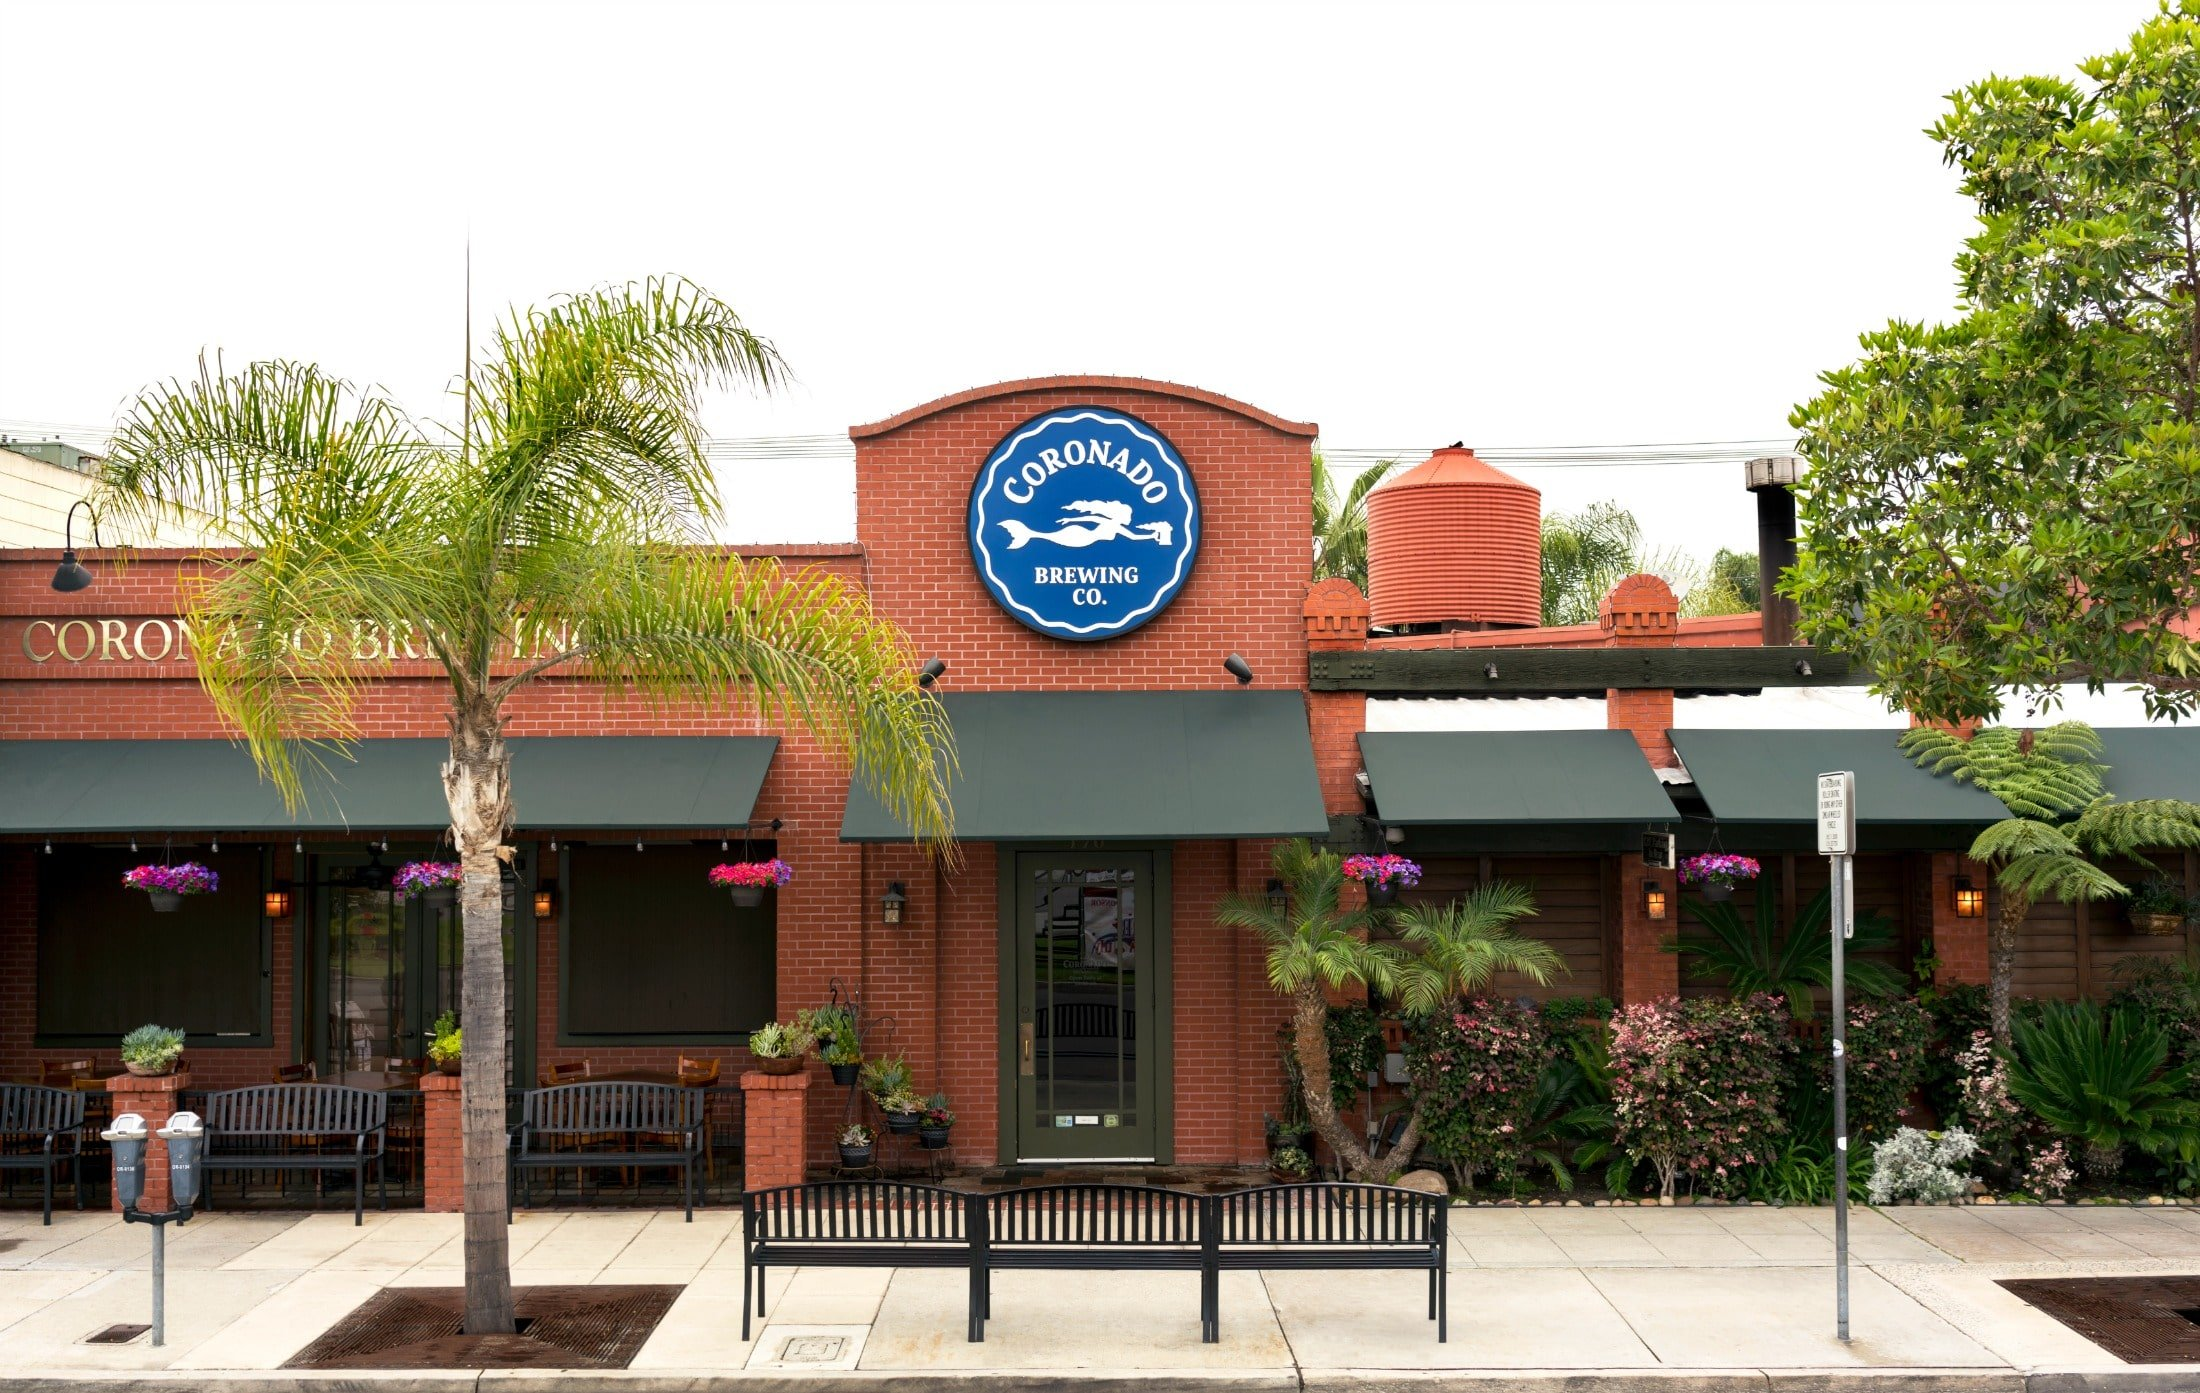 Coronado Brewing Co. offers beer and great food.